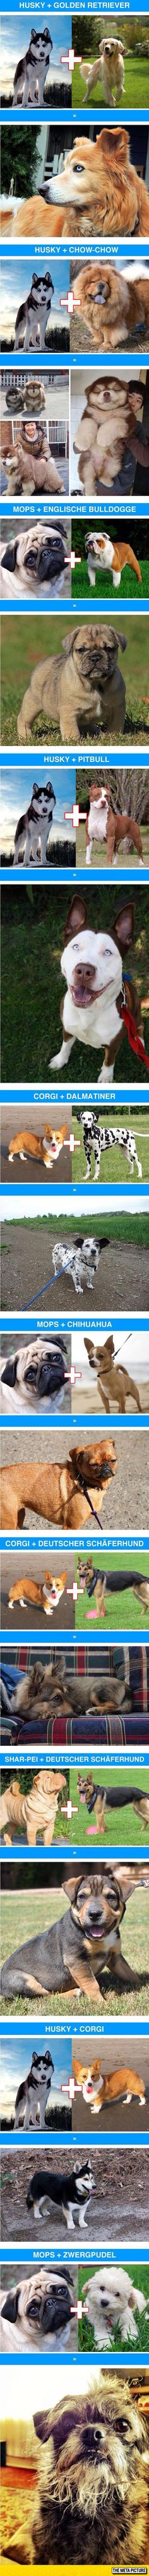 Awesome Dog Cross-Breeds